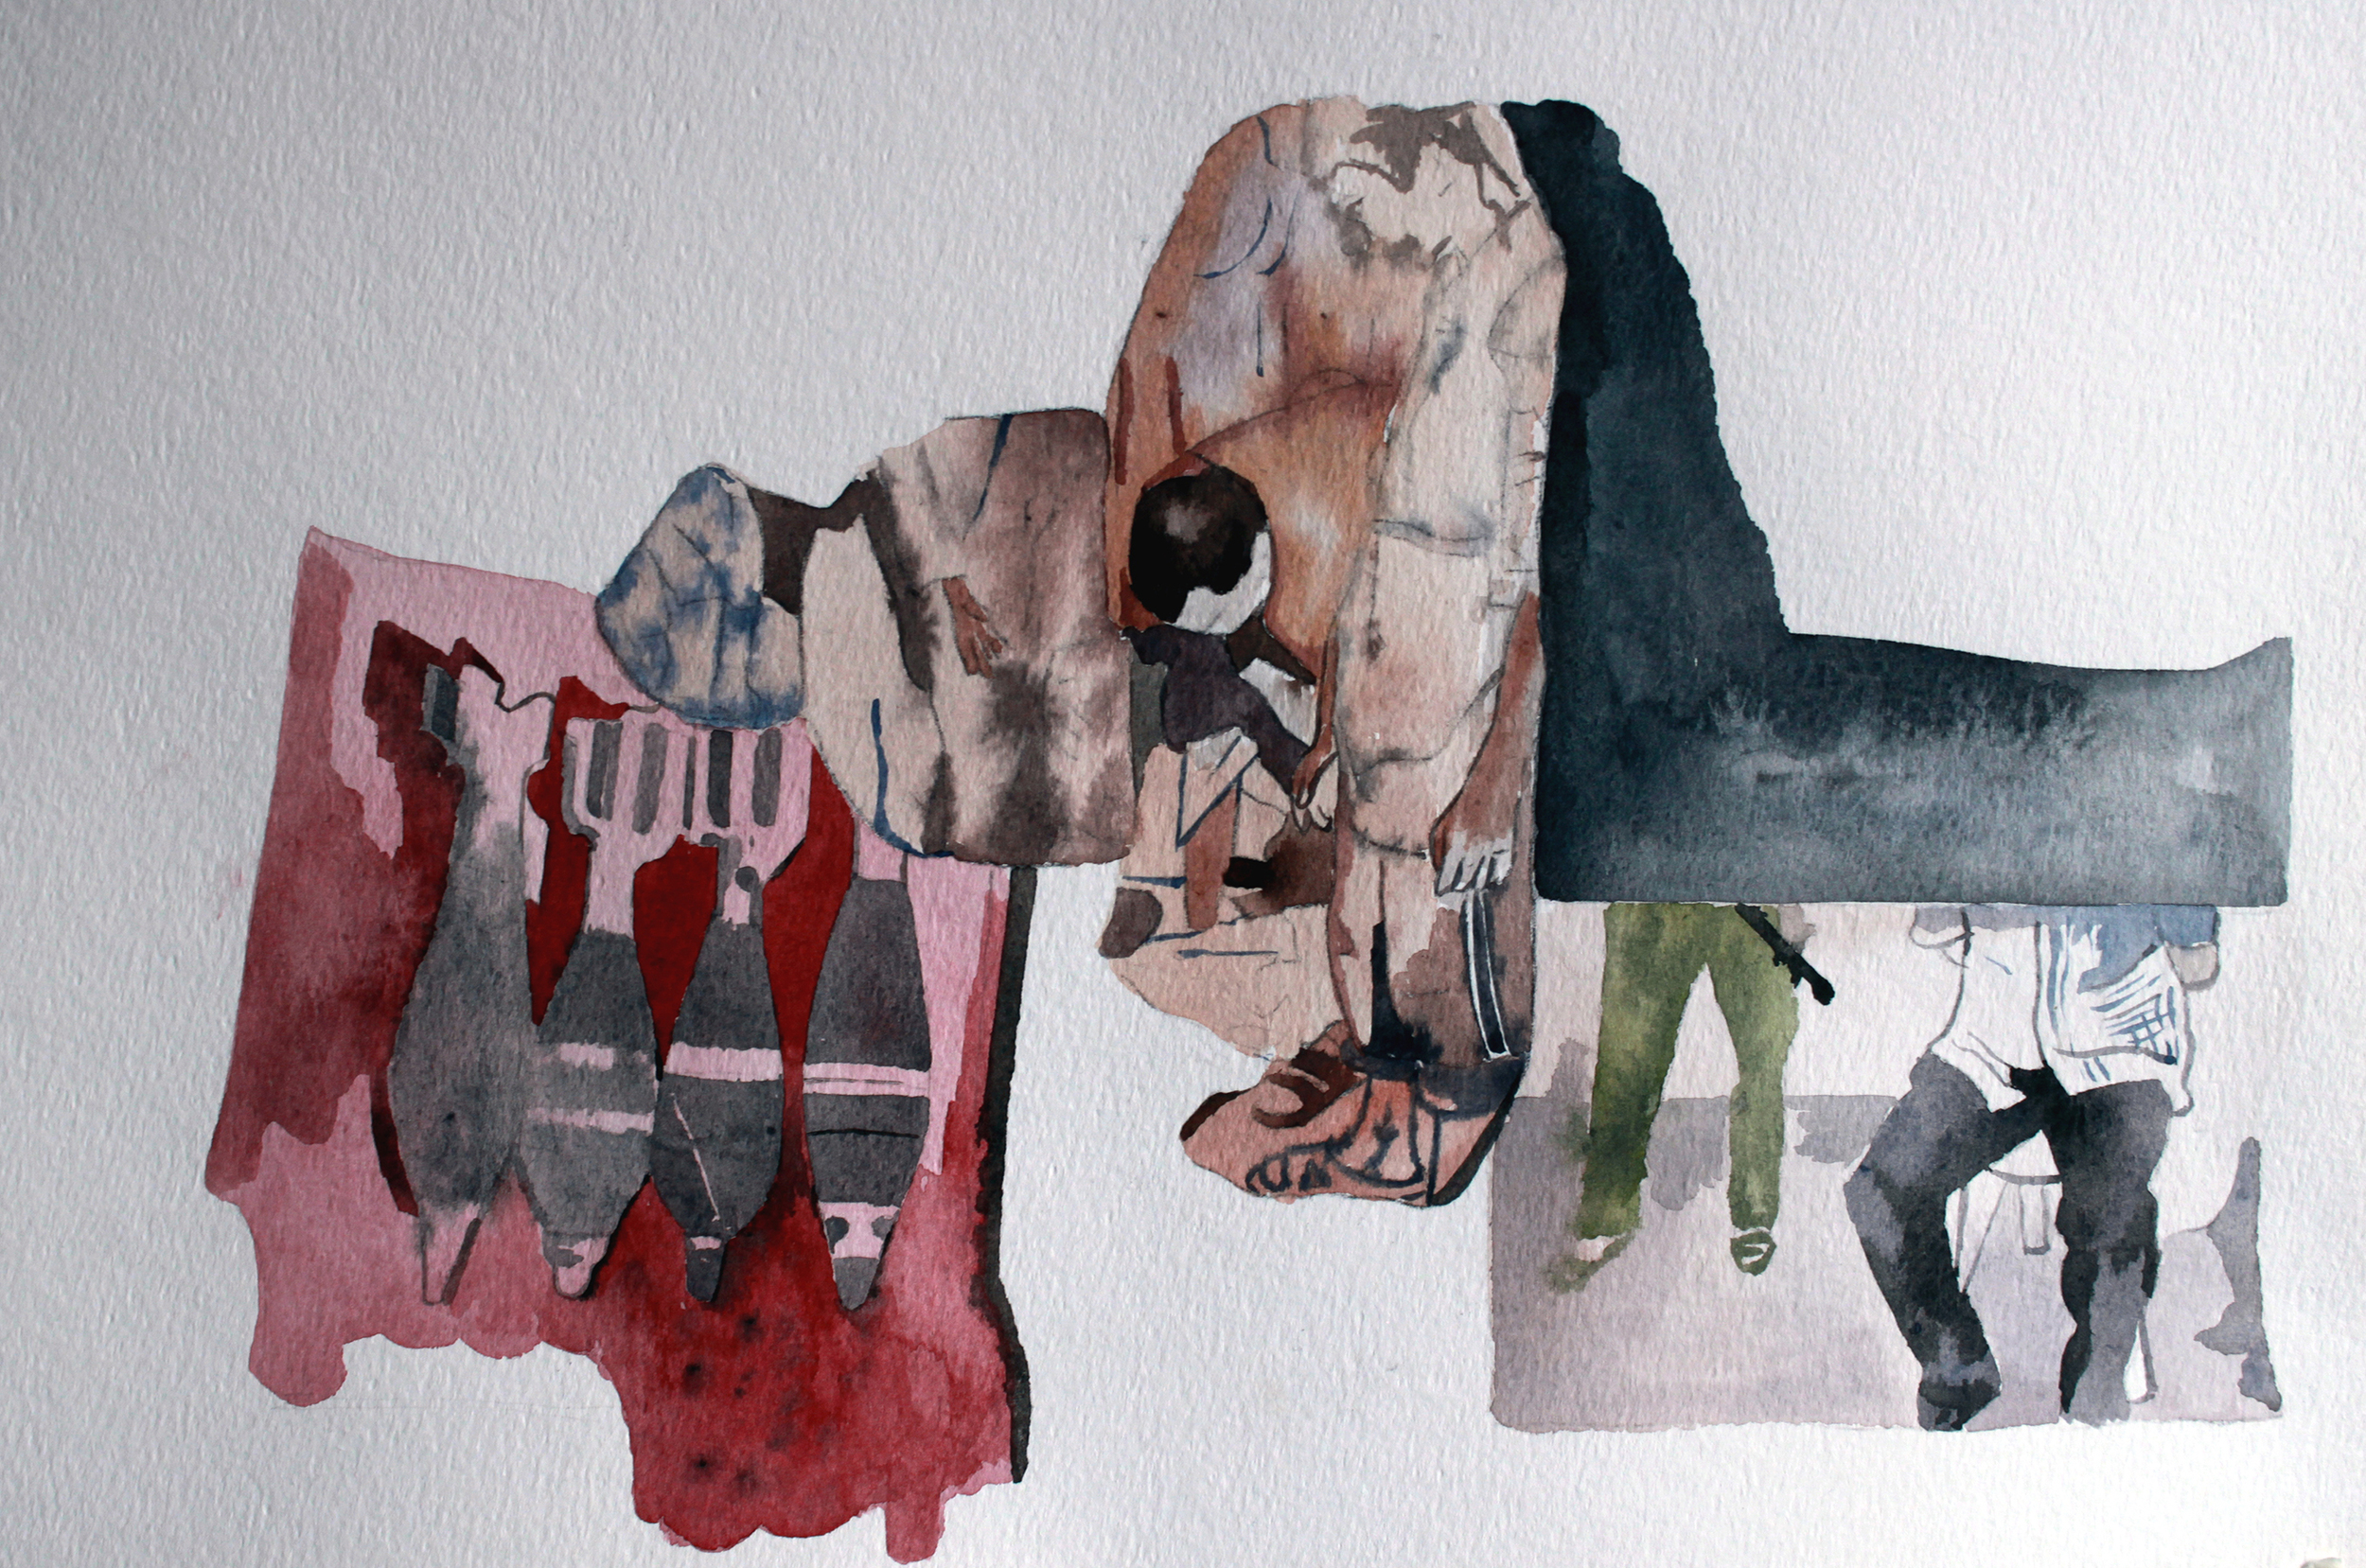 UNTITLED, Watercolour on paper, 30.5 x 40.5cm, 2014